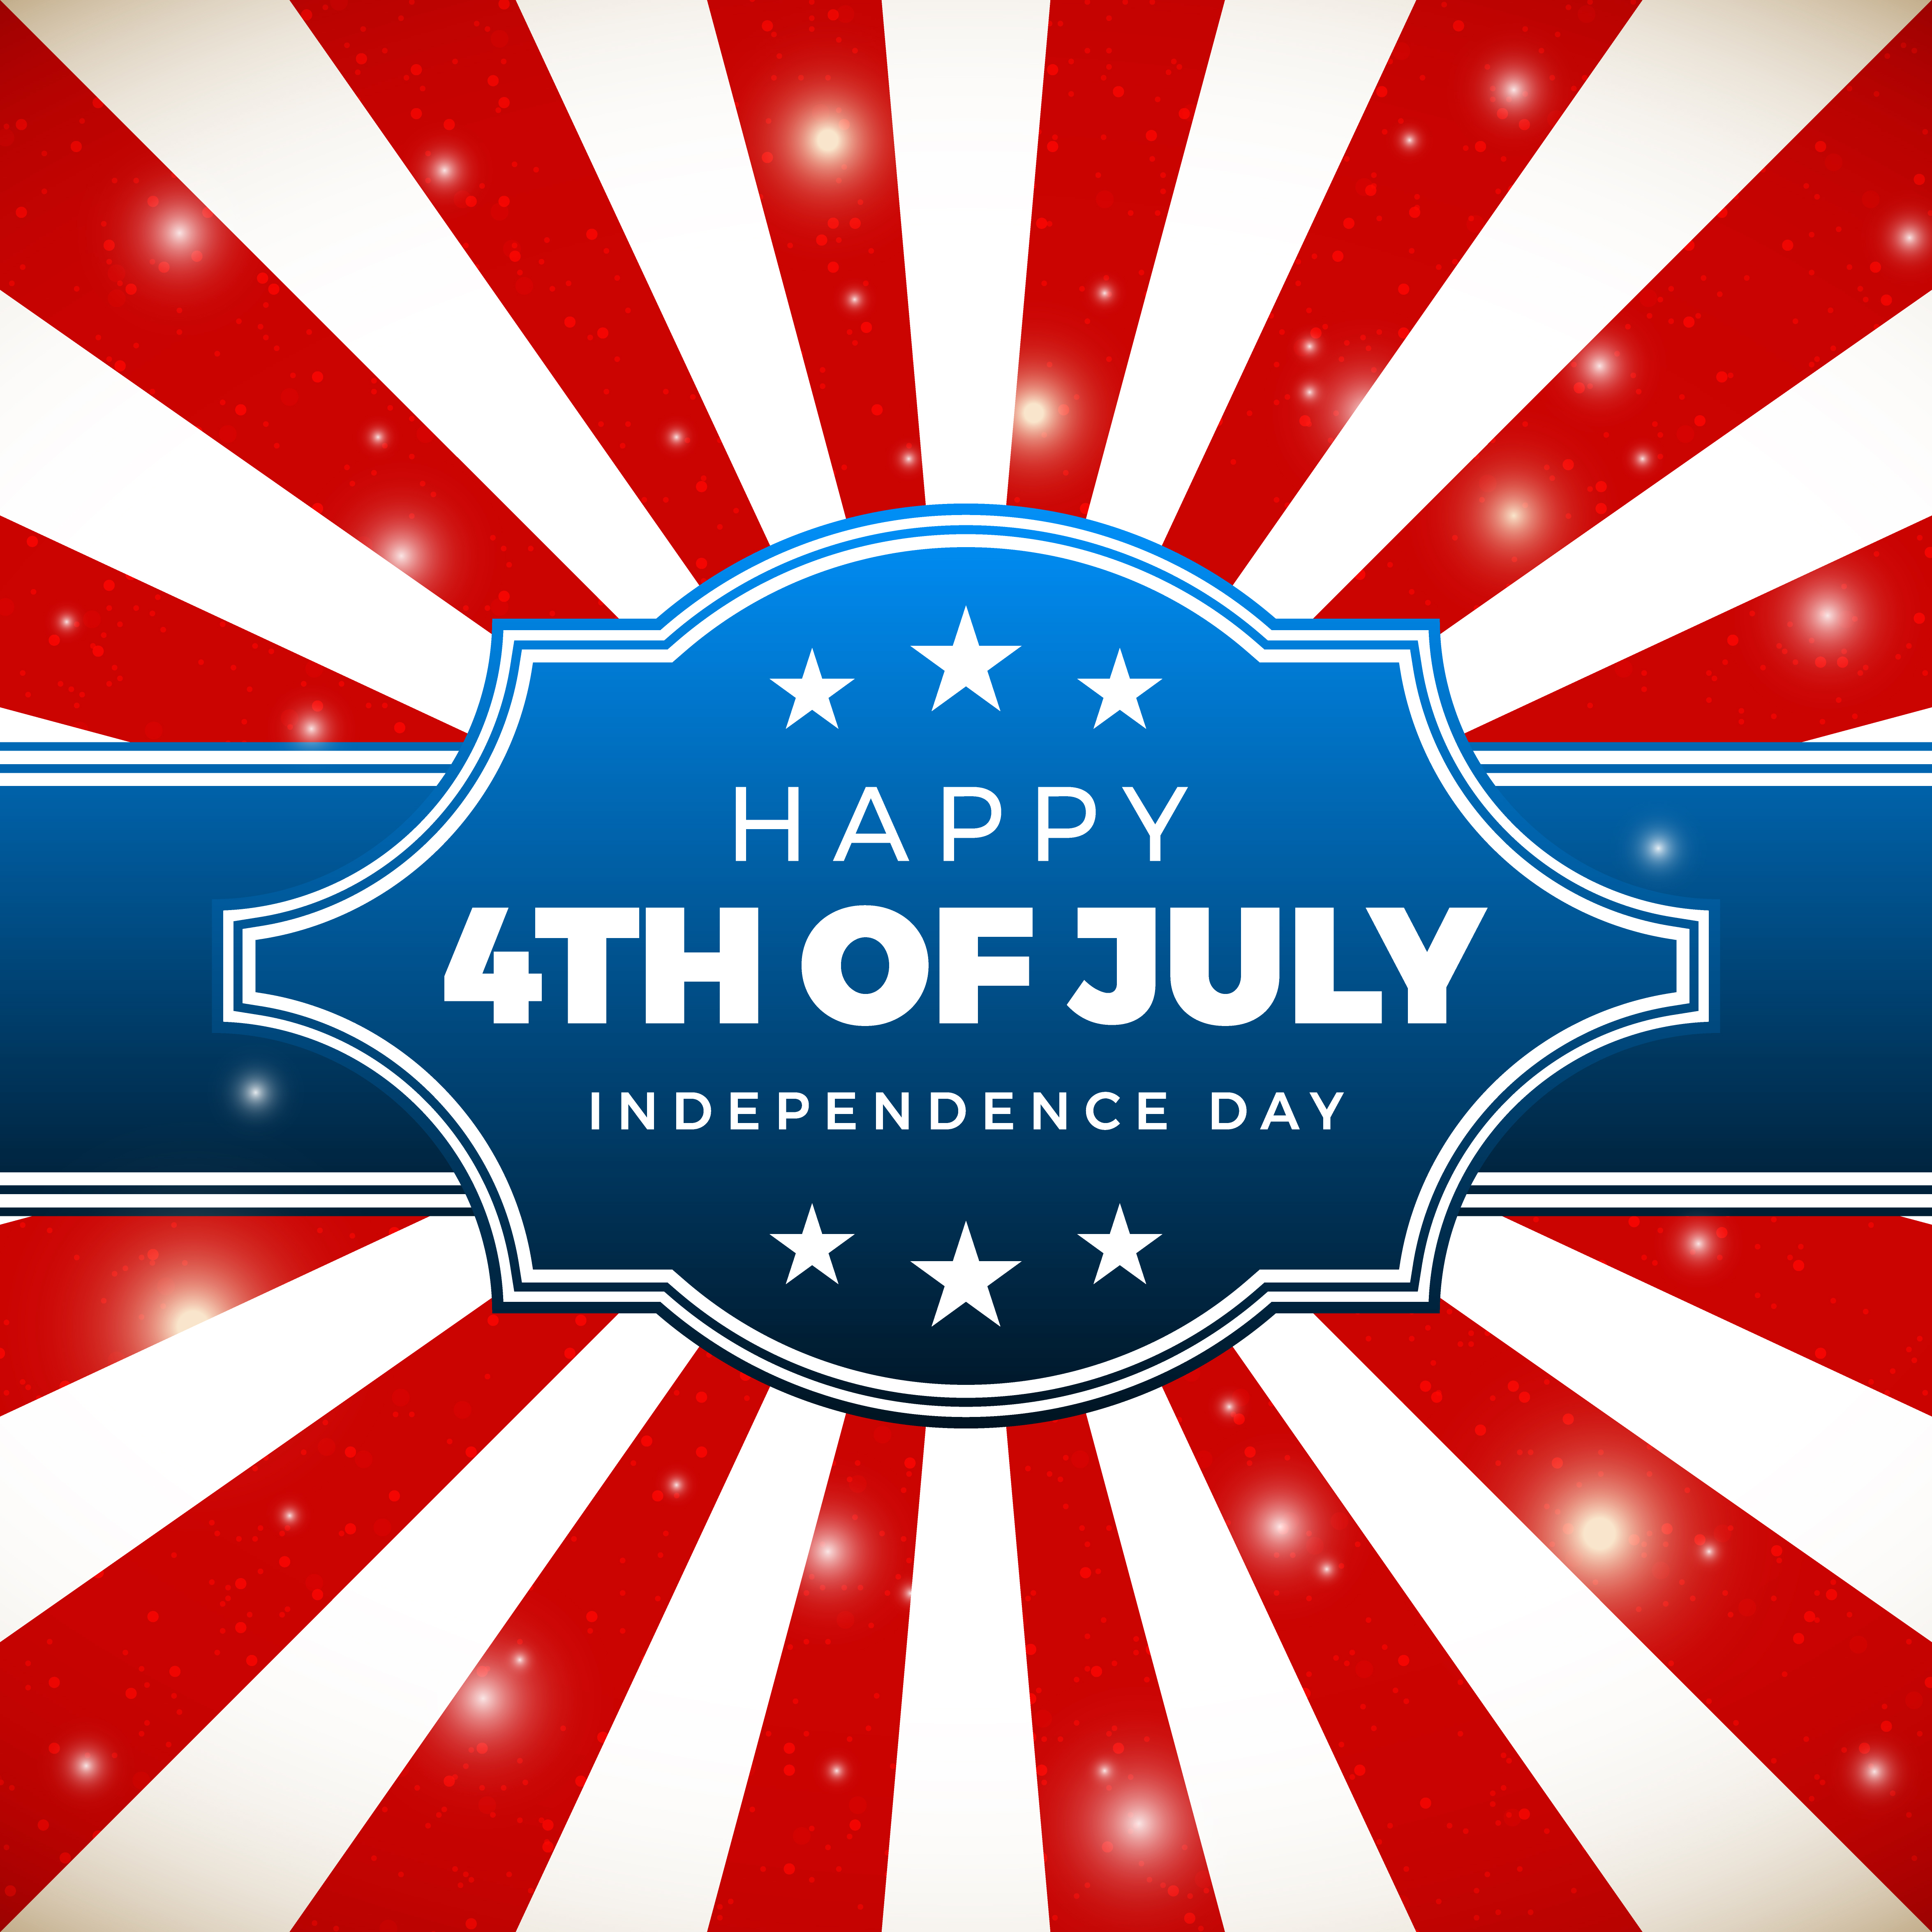 Independence Day: Independence Day Design. Holiday In United States Of